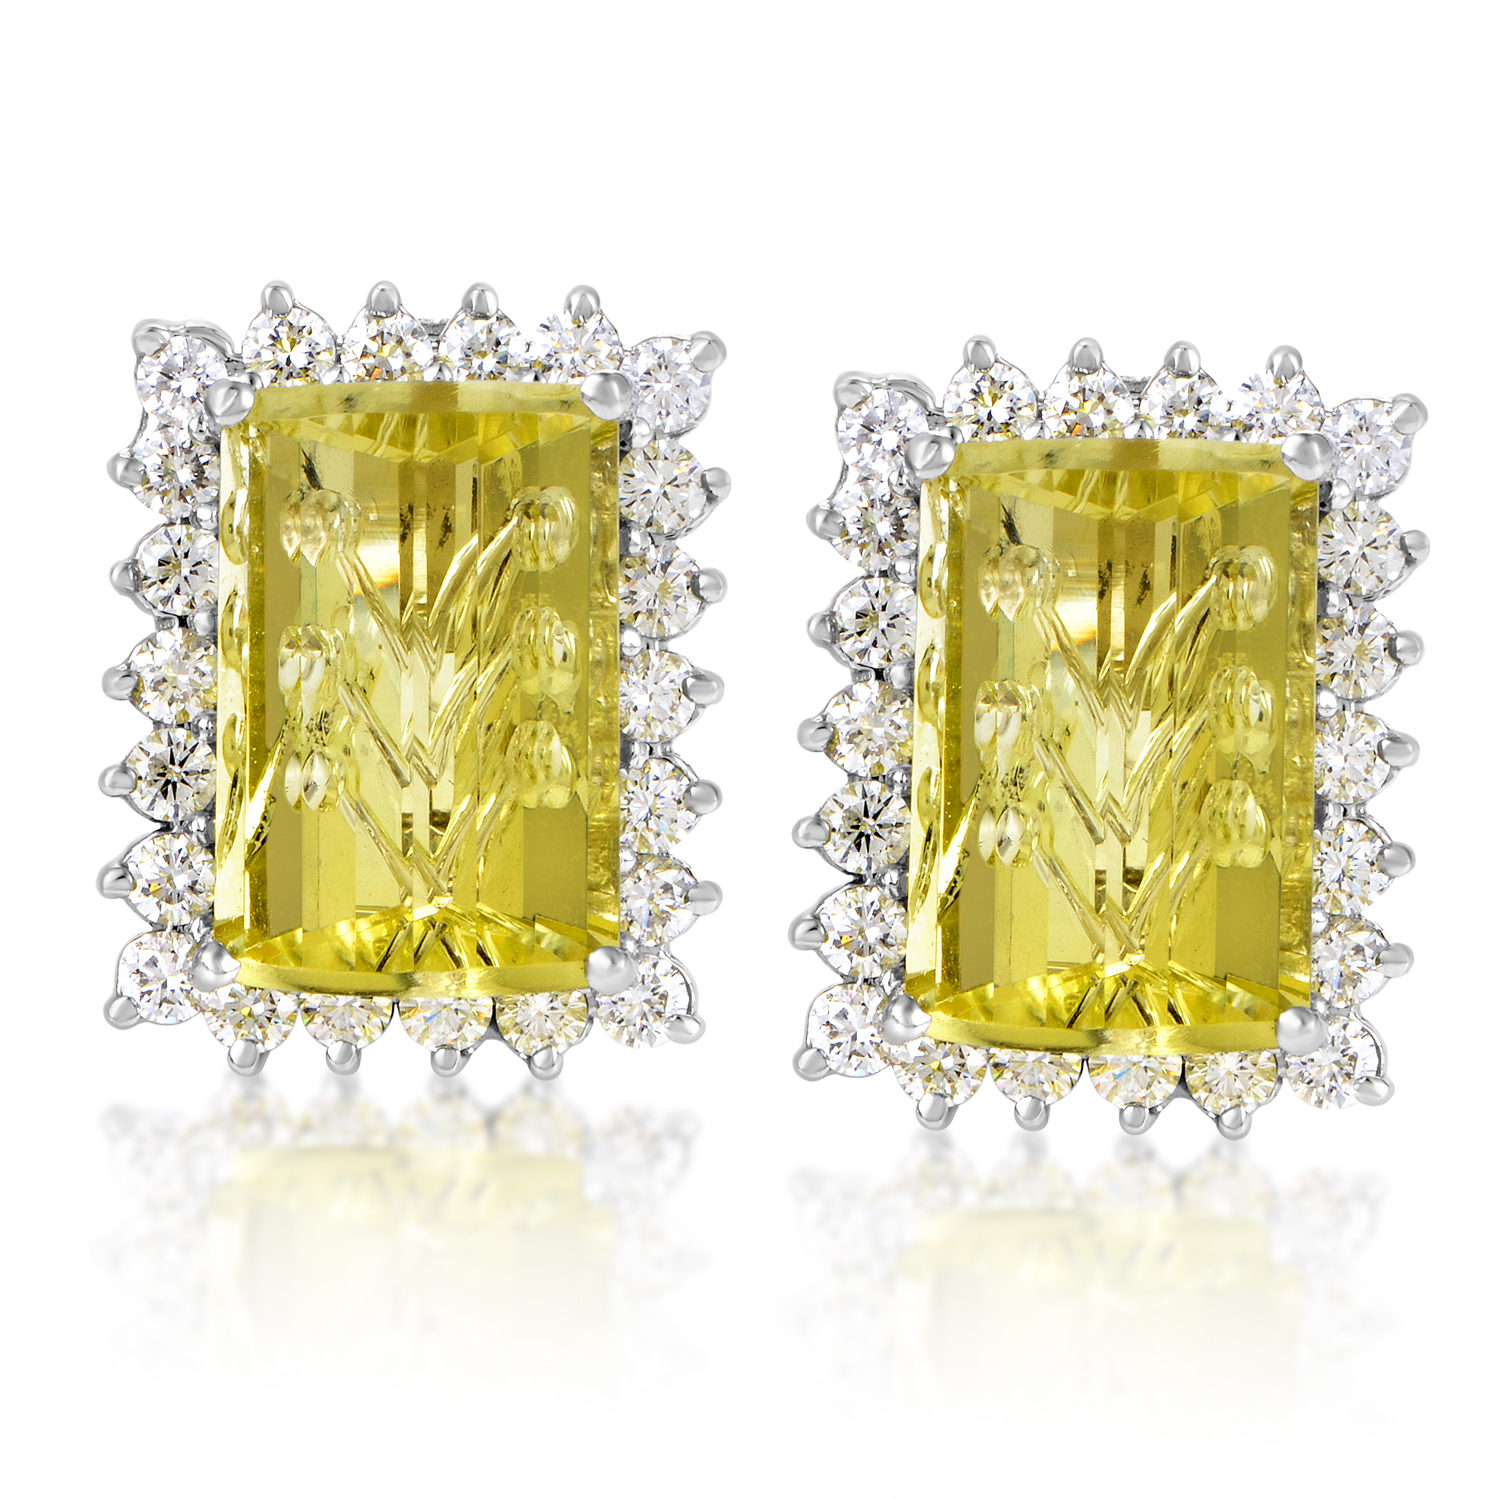 Women's 18K White Gold Diamond & Lemon Quartz Earrings